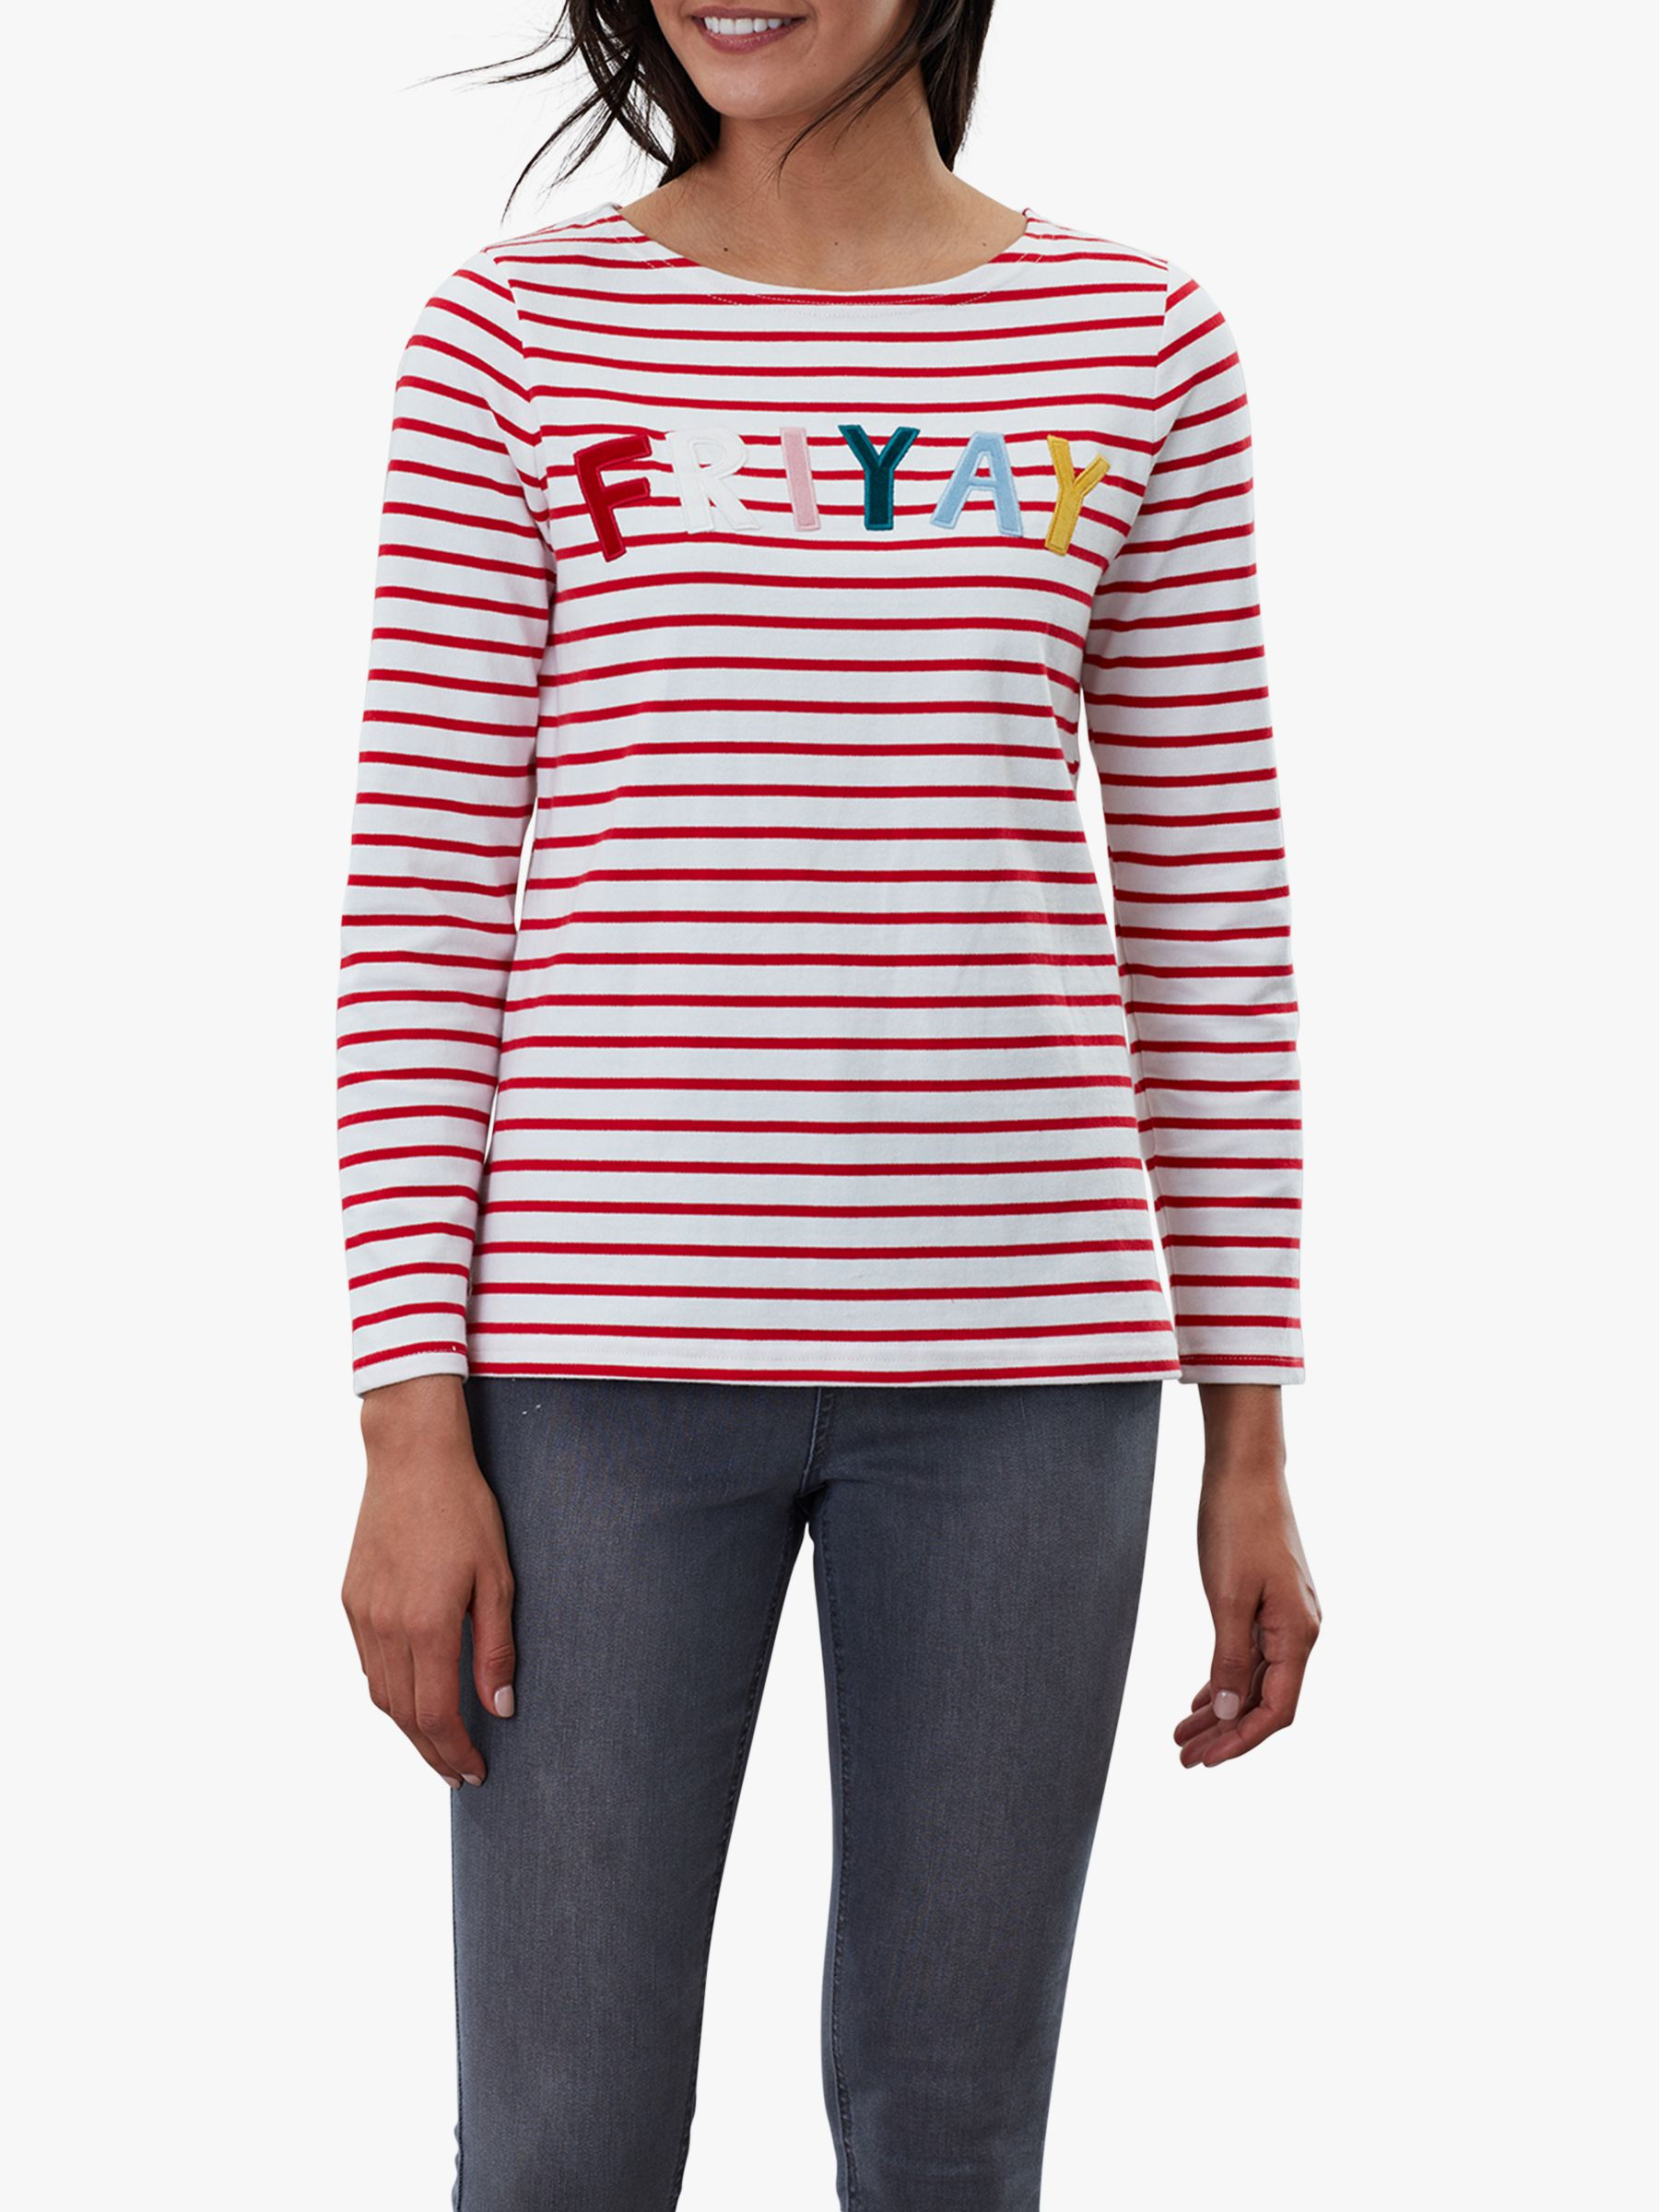 Joules Joules Harbour Luxe Long Sleeve Jersey Top, Red/Multi